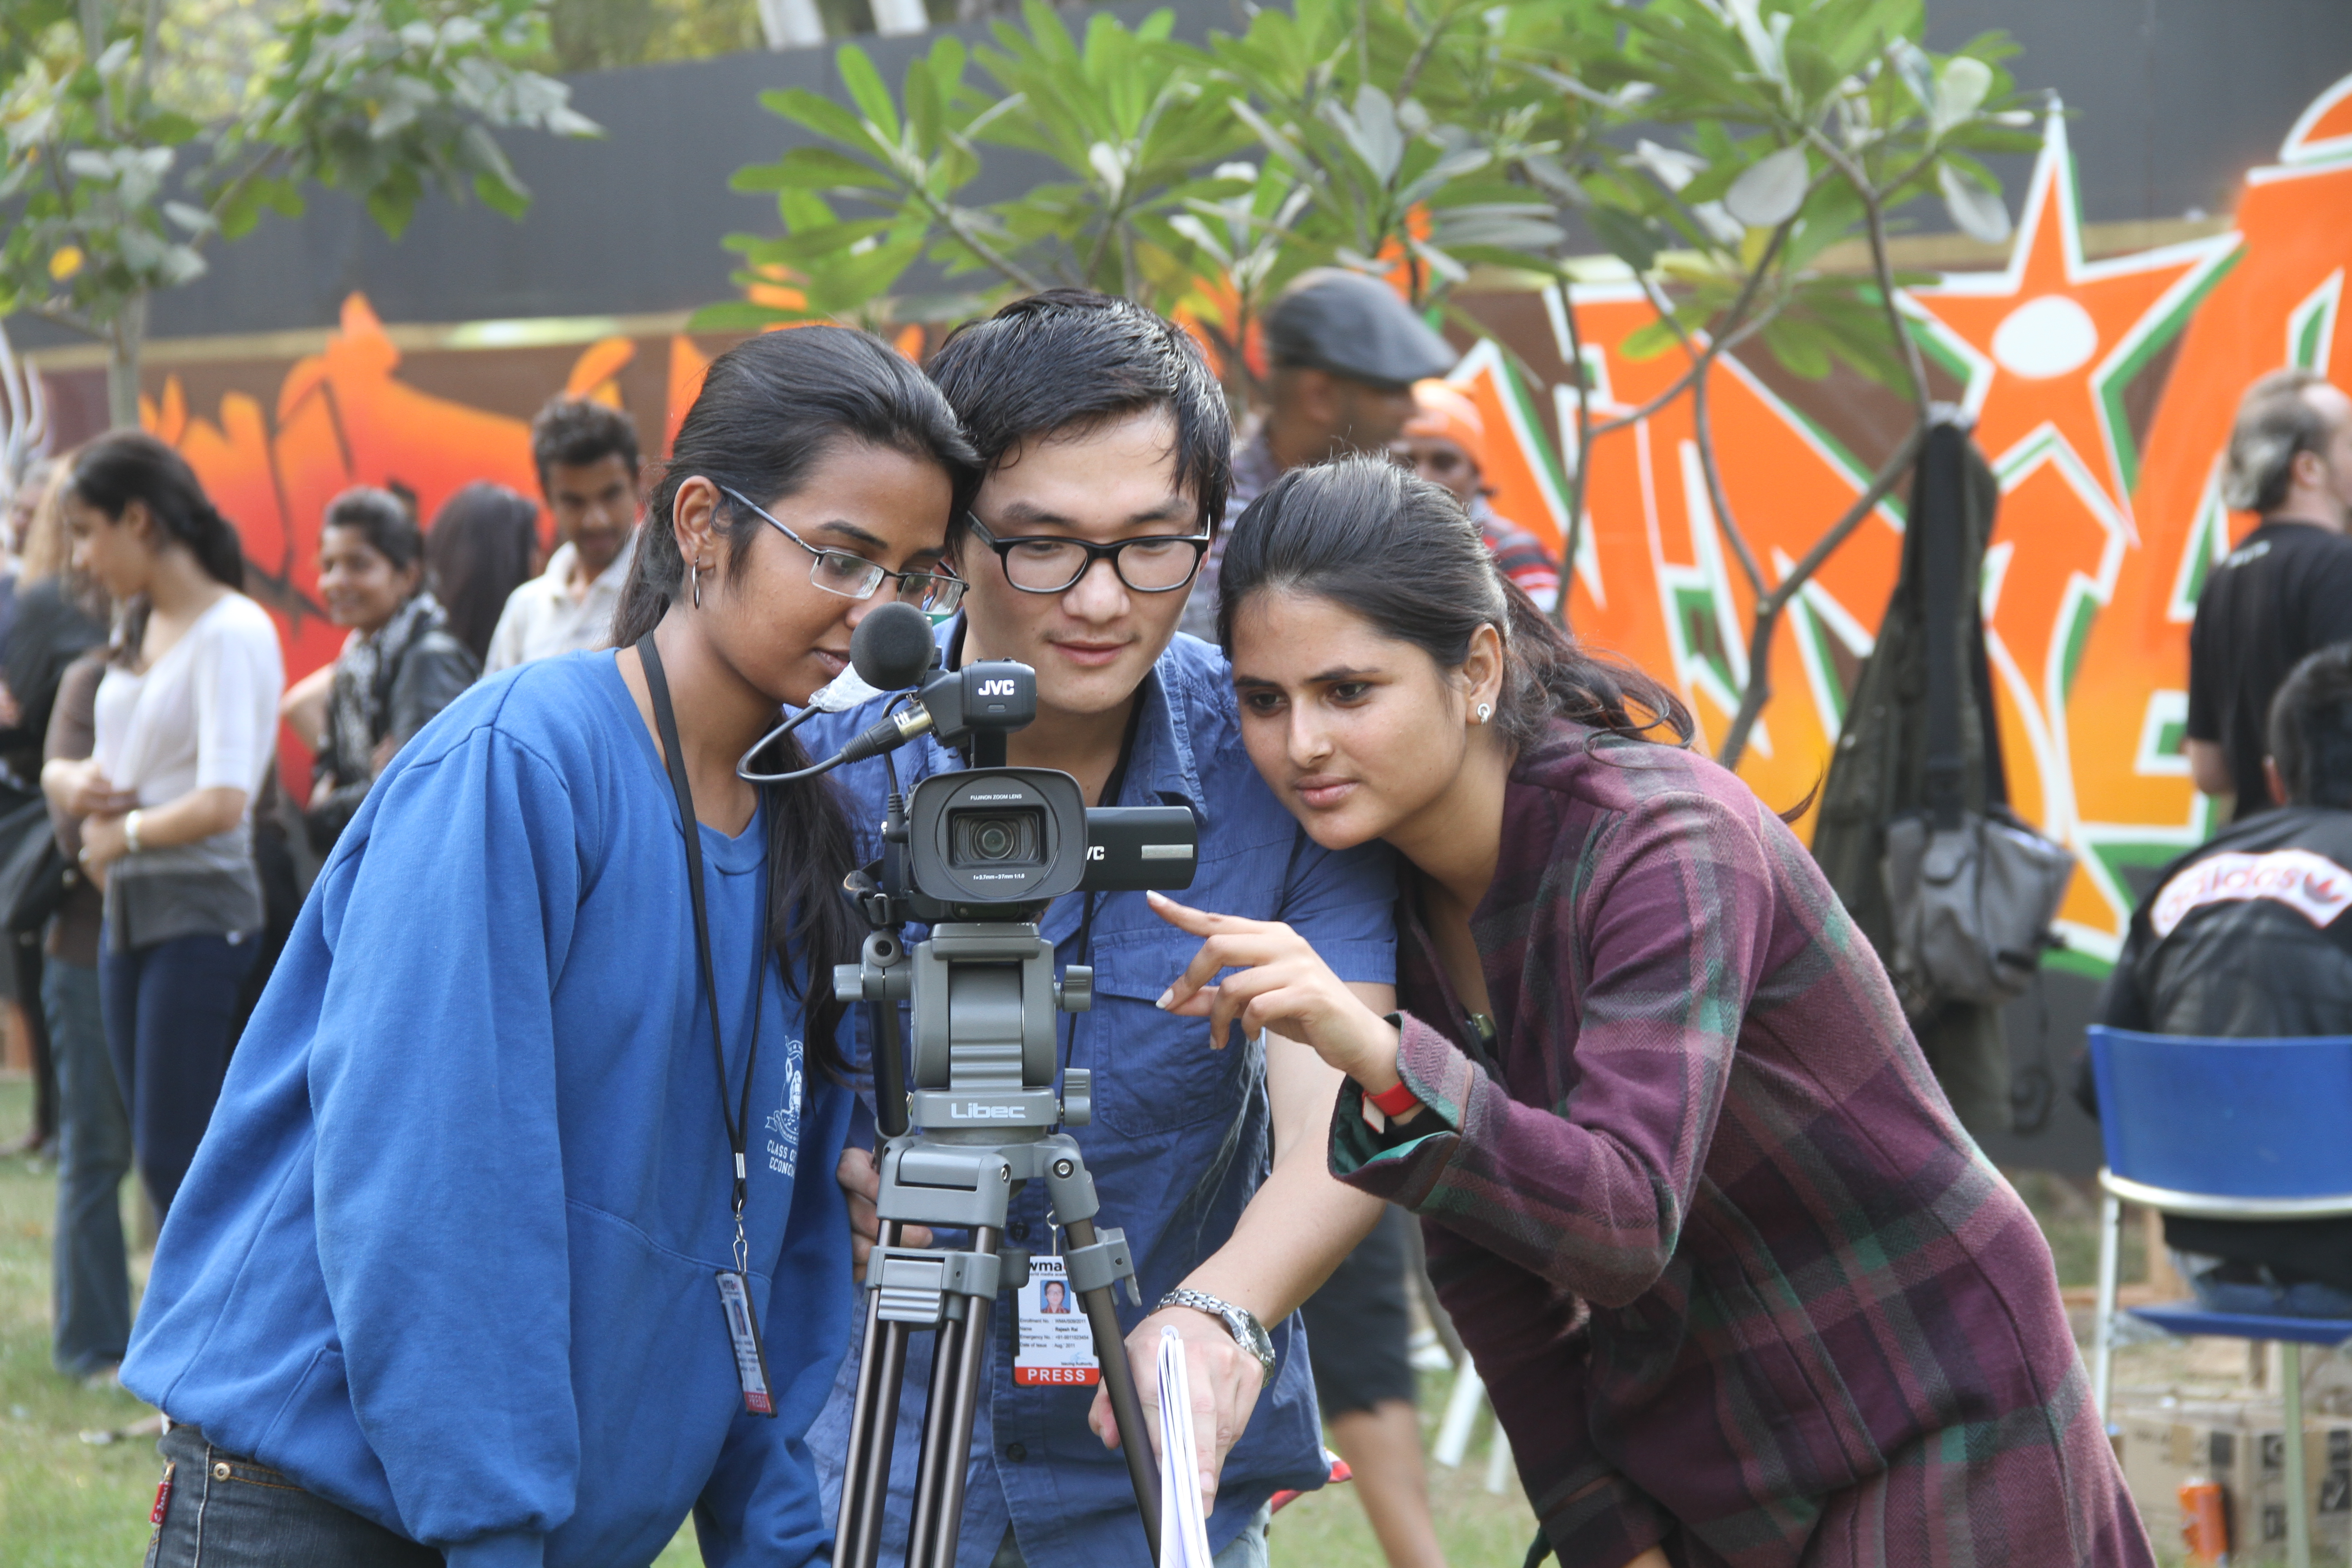 Media academy in India prepares students for digital jobs